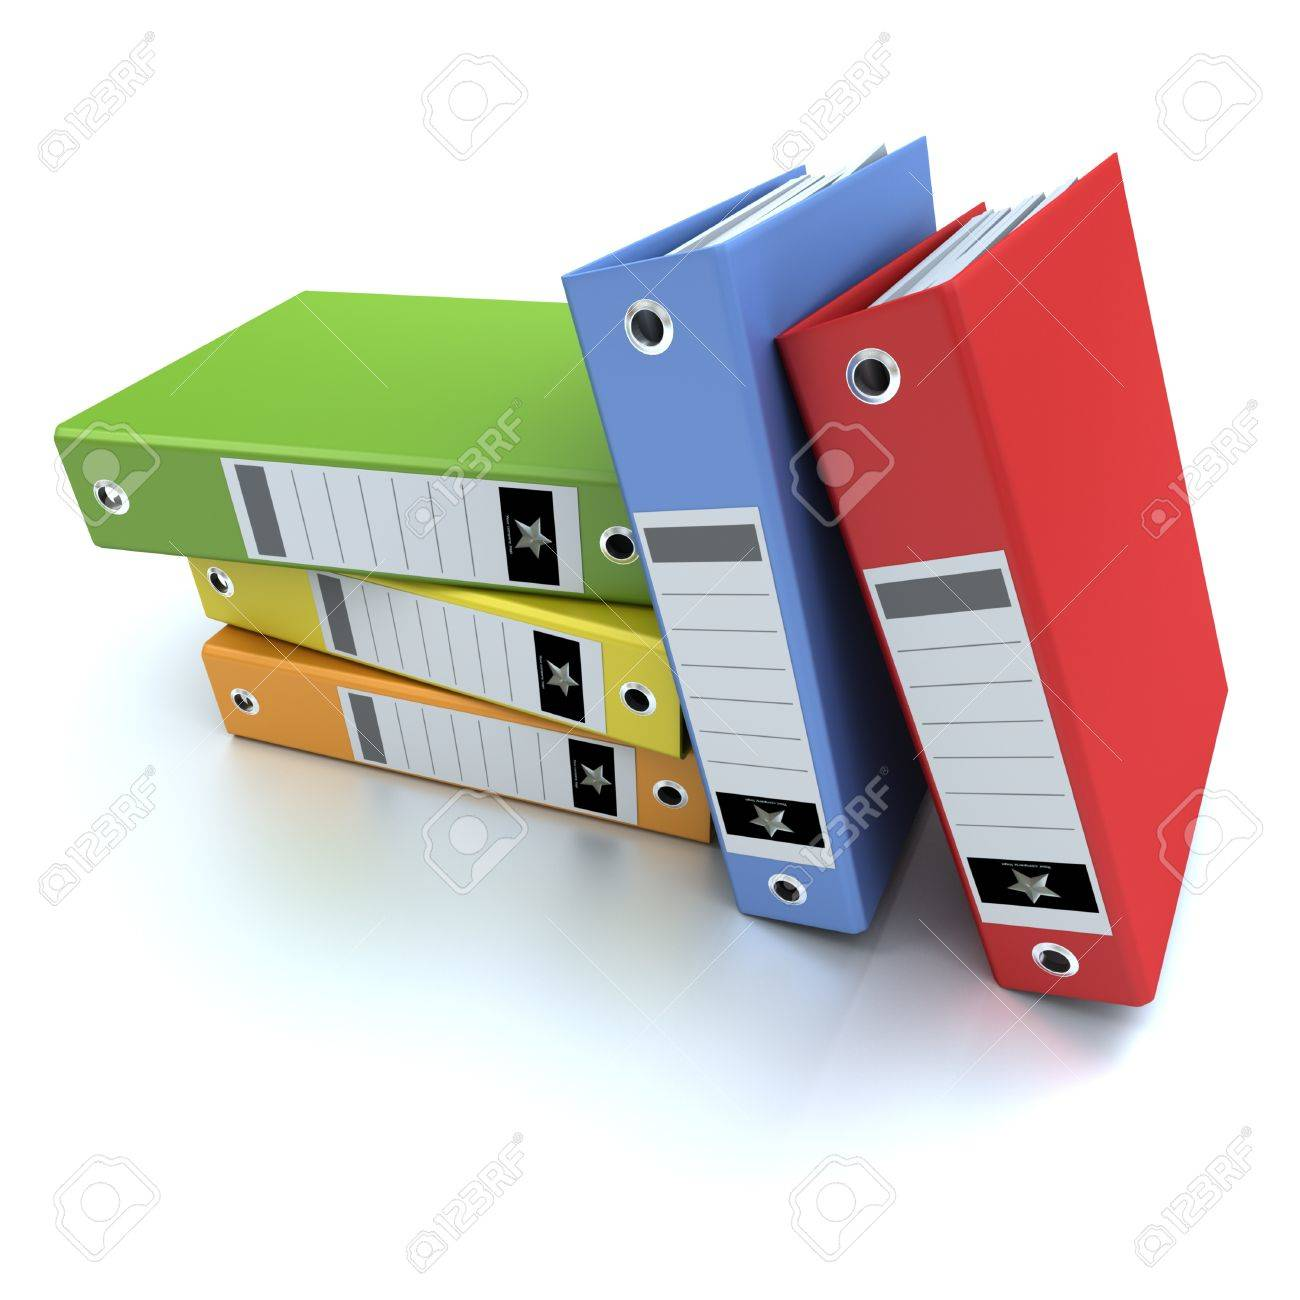 3D-rendering of a group of colorful ring binders Stock Photo - 13441588